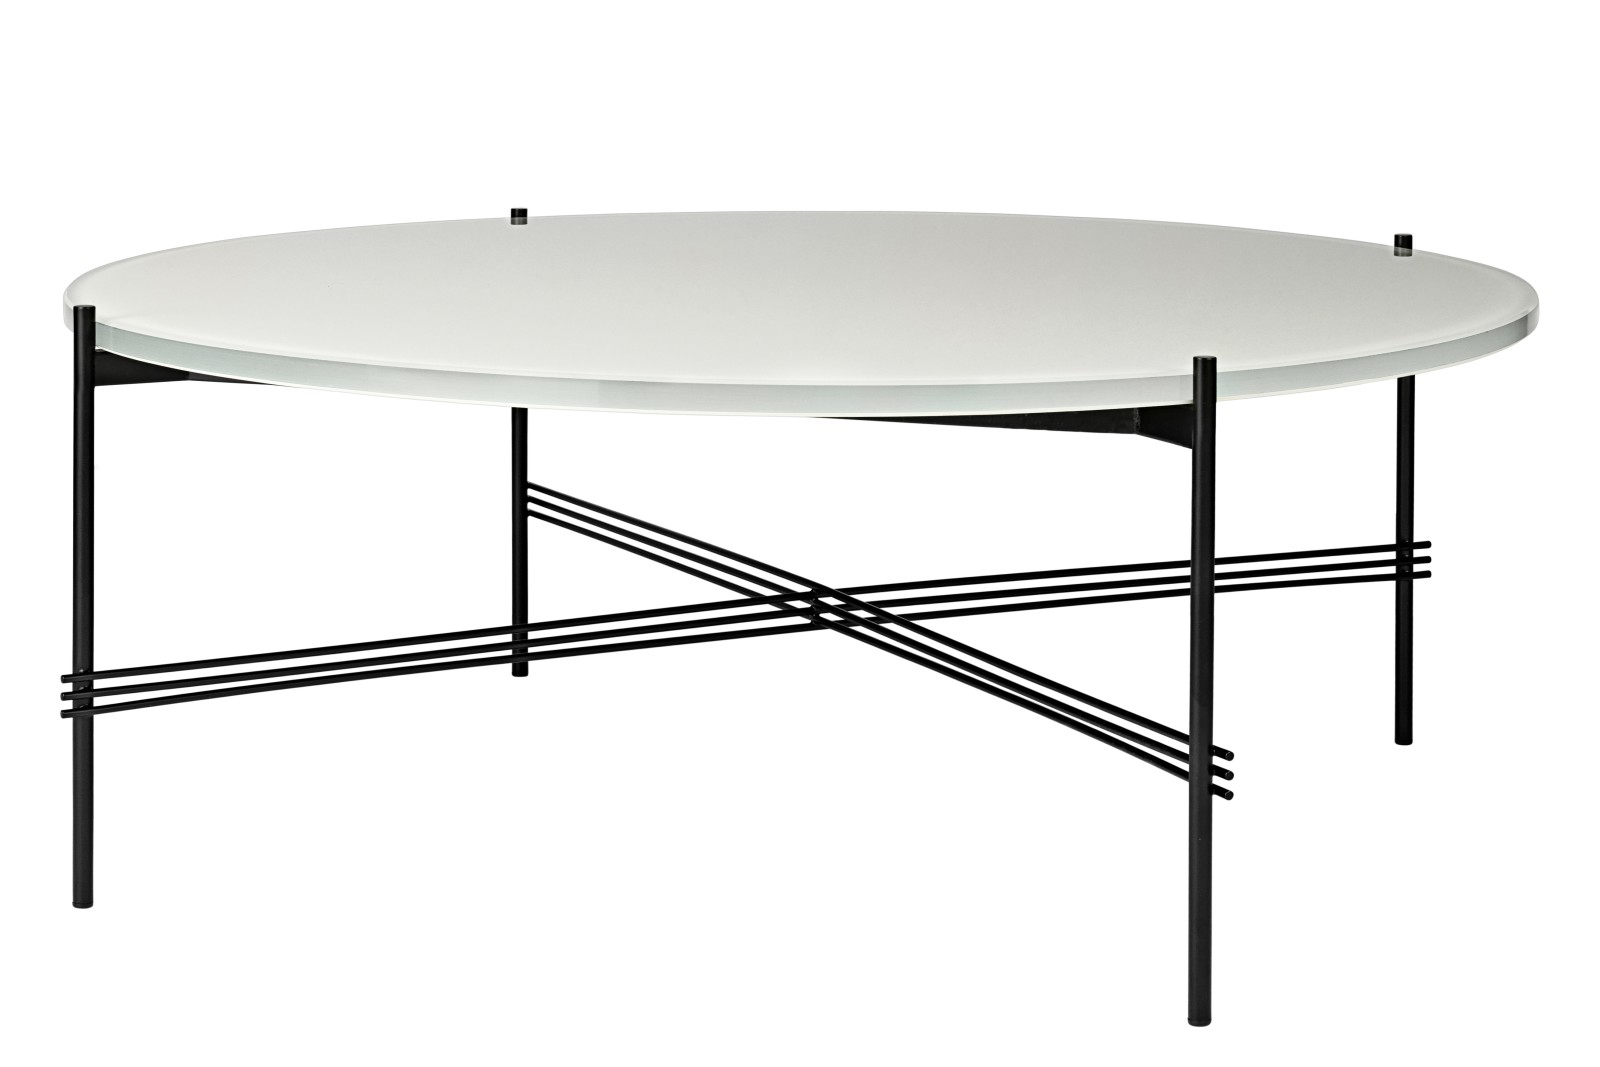 TS Round Coffee Table with Glass Top - Black Frame Oyster White Top and Black Frame, 0 105 x 40 cm